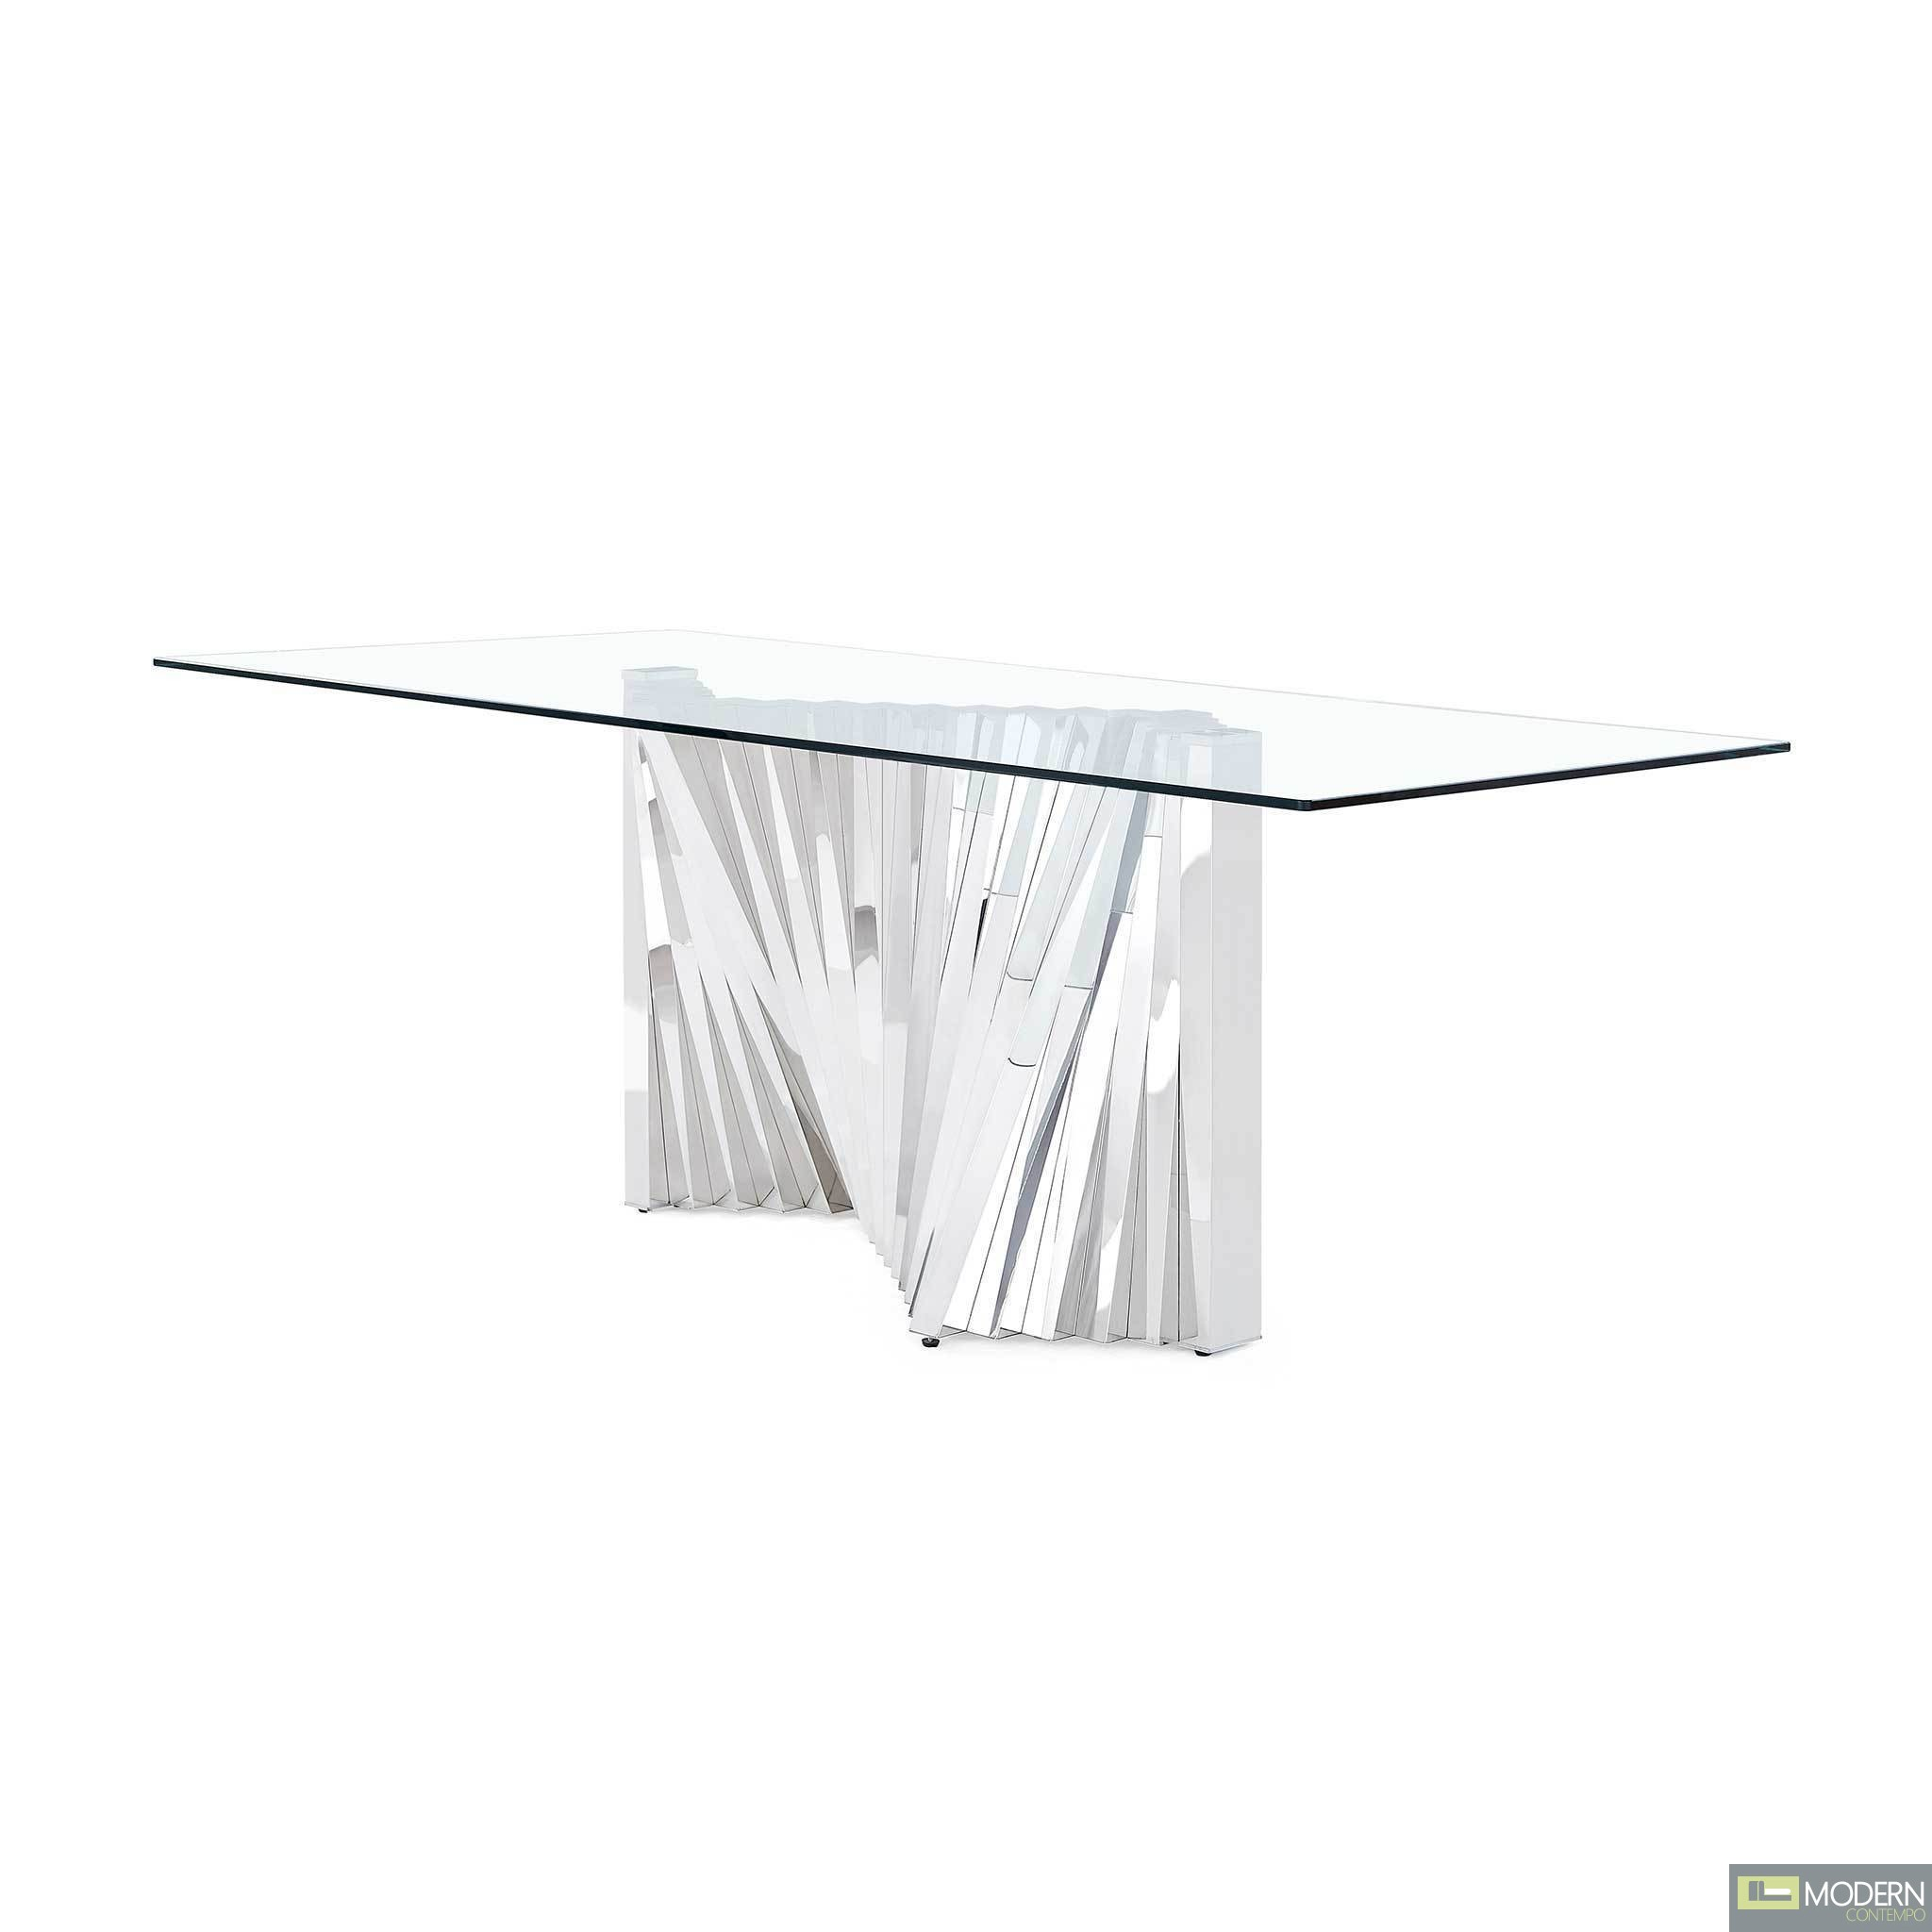 Jupiter Modern Clear glass and stainless steel base table.